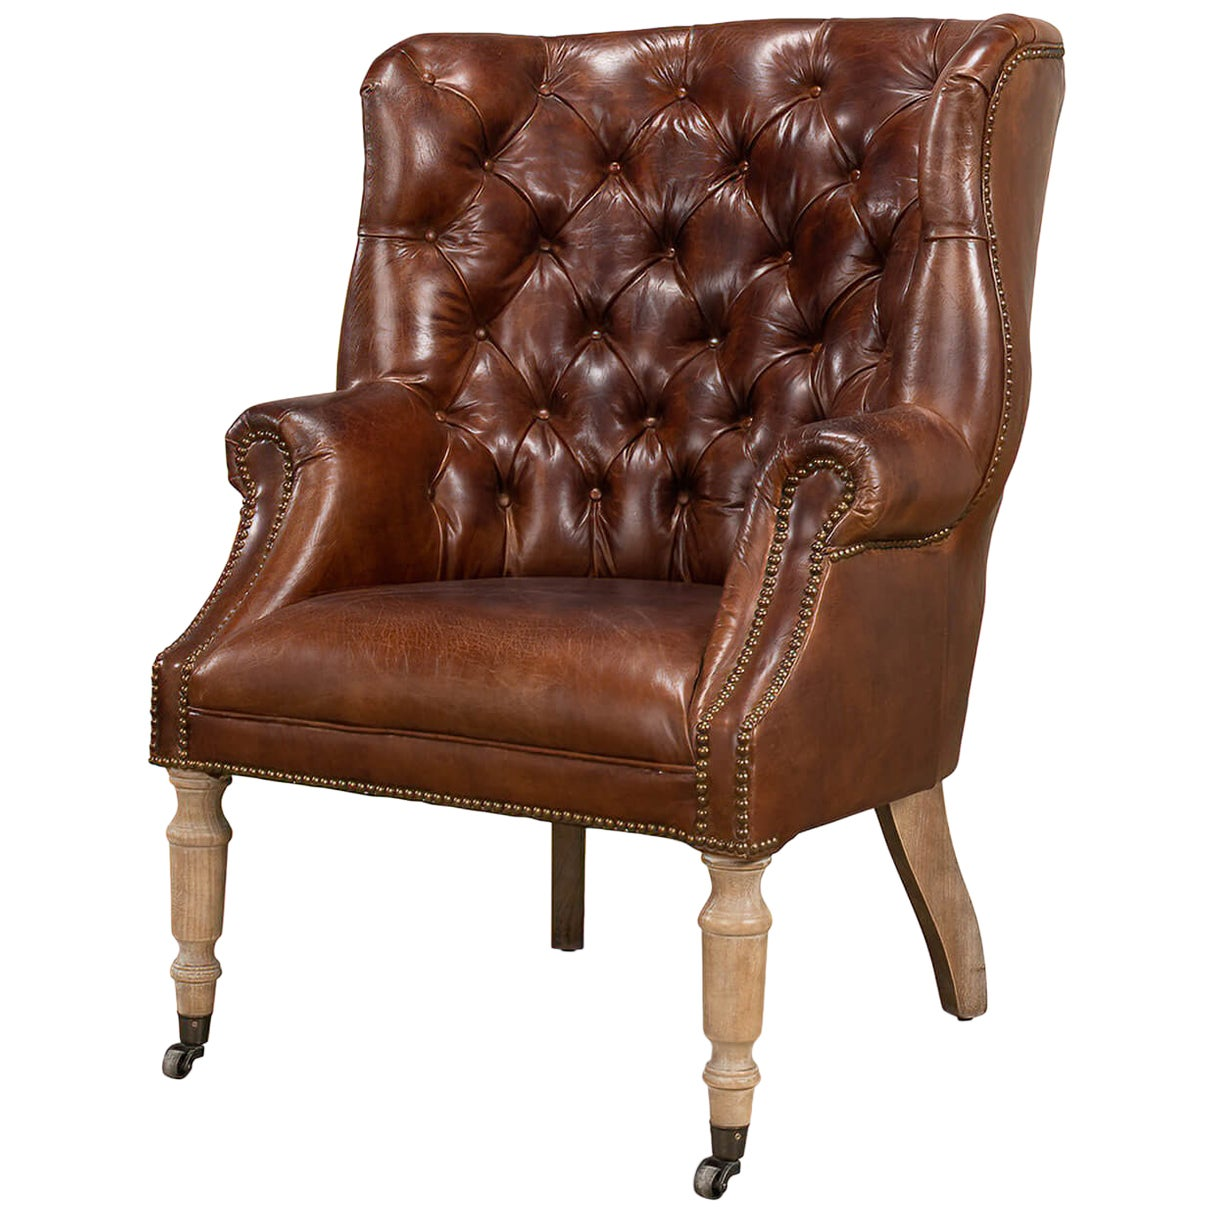 Georgian Barrel Back Wingchair